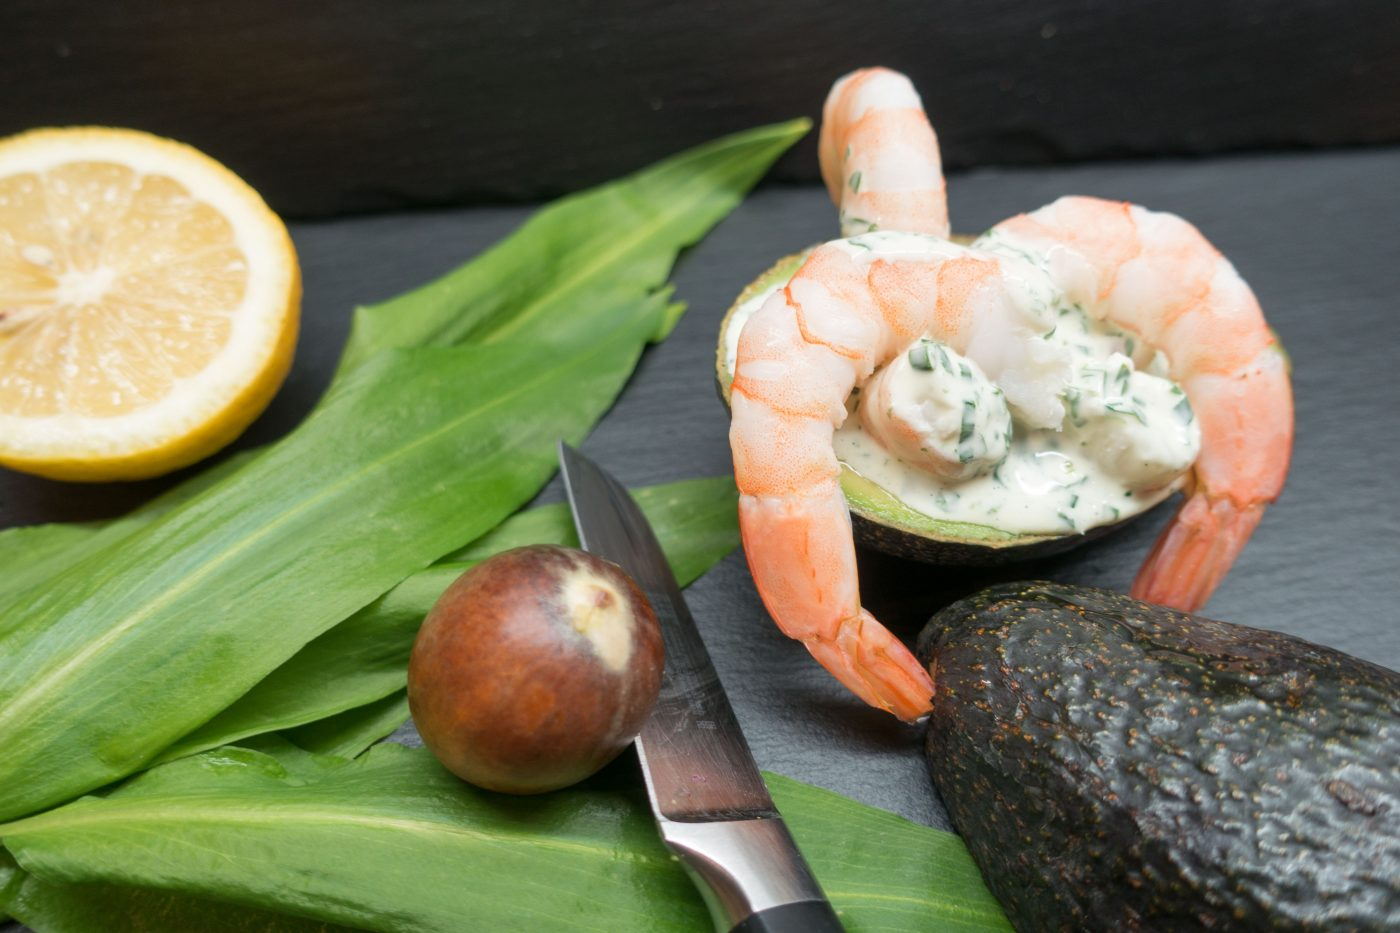 Avocado stuffed with prawns and wild garlic sauce